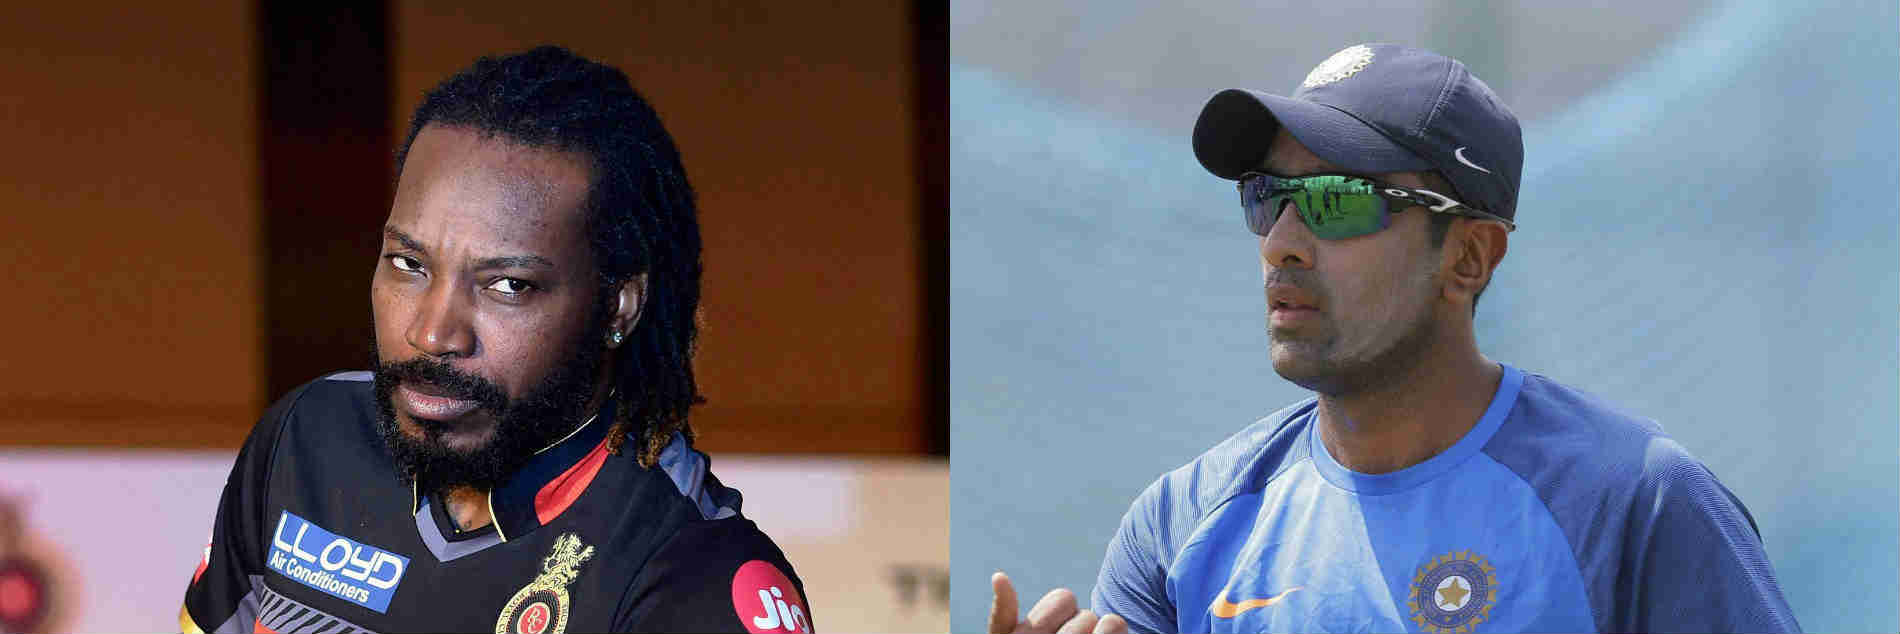 Players Chris Gayle and R Ashwin can create a spark during IPL auction later this month